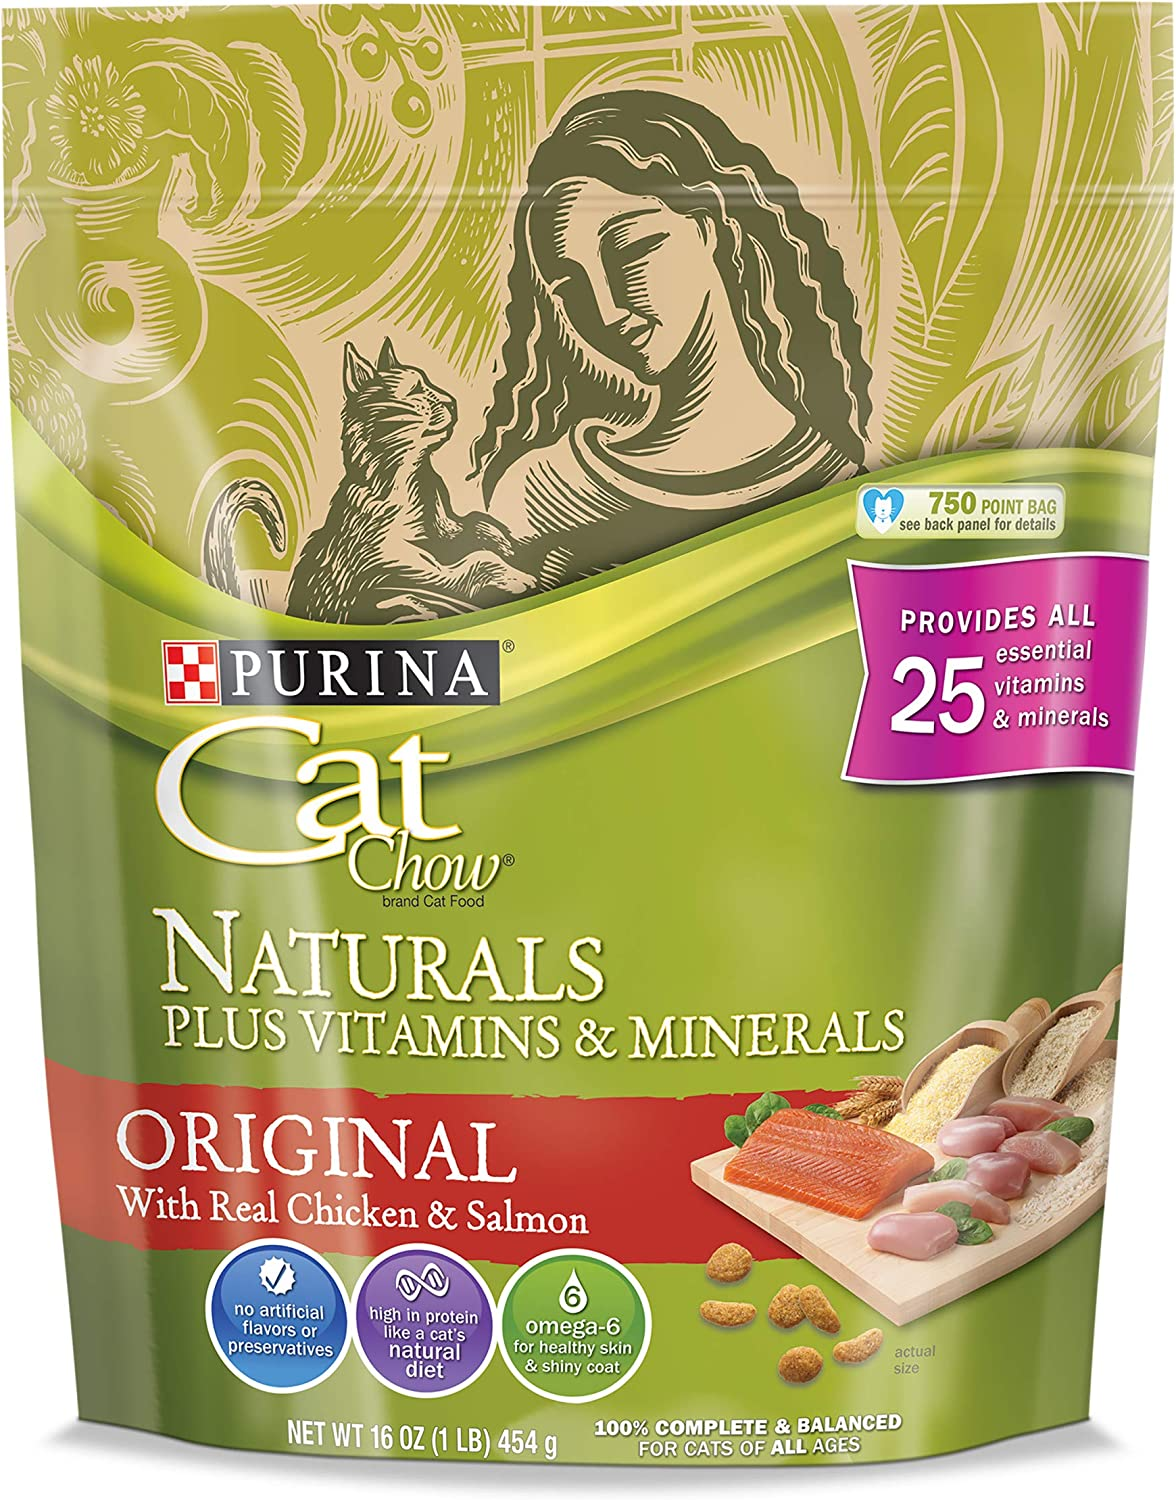 Purina Cat Chow Dry Cat Food, Naturals, 16 Ounce Pouch, Pack of 6